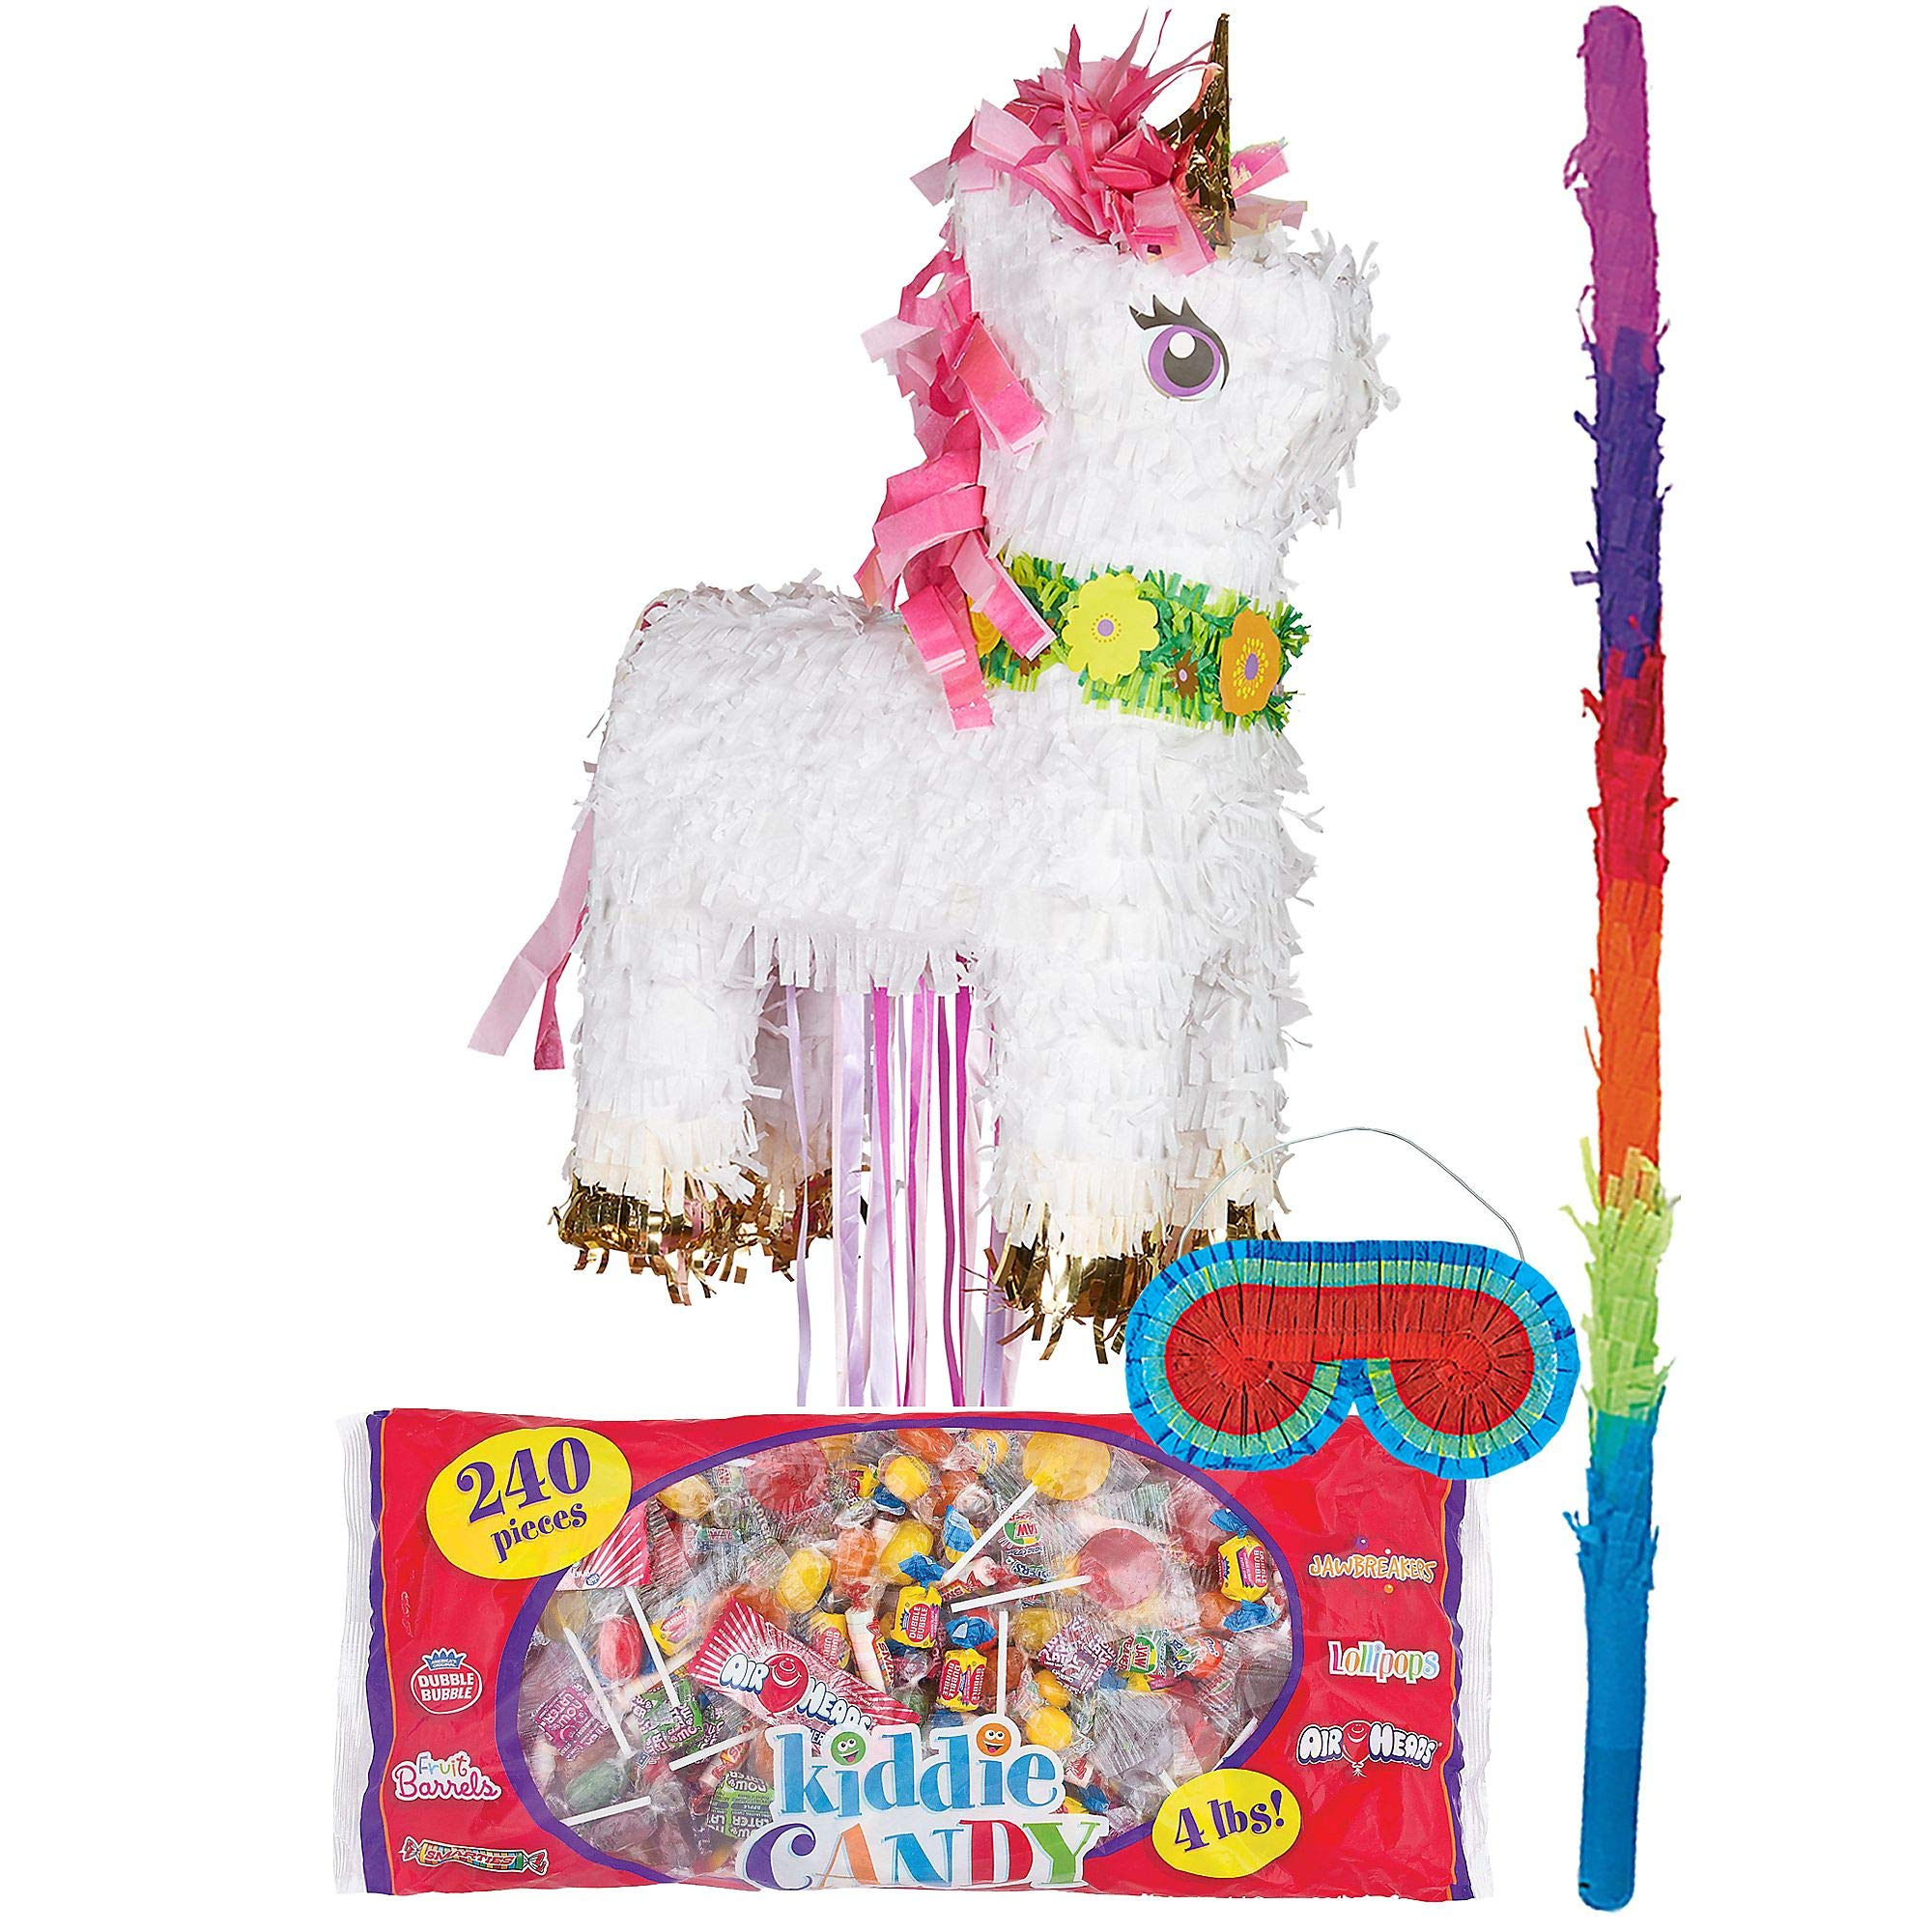 Party City Sparkling Unicorn Pinata Kit, Birthday Party Activities, Includes Blindfold, Bat and 240 Kiddie Candy Mix